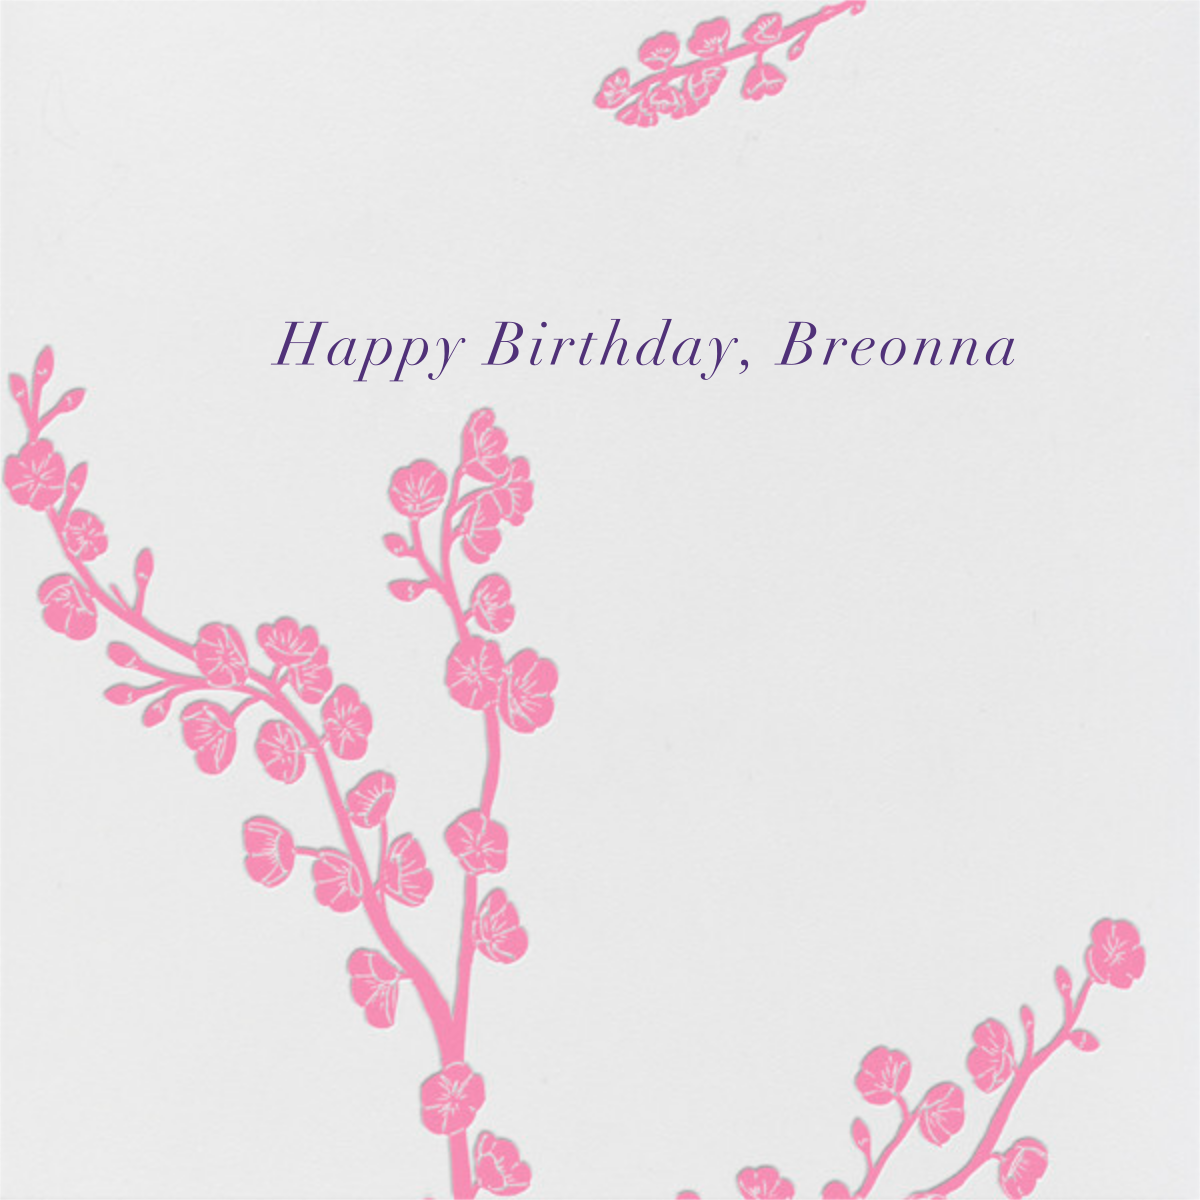 Cherry Blossoms - Paperless Post - Breonna Taylor birthday cards